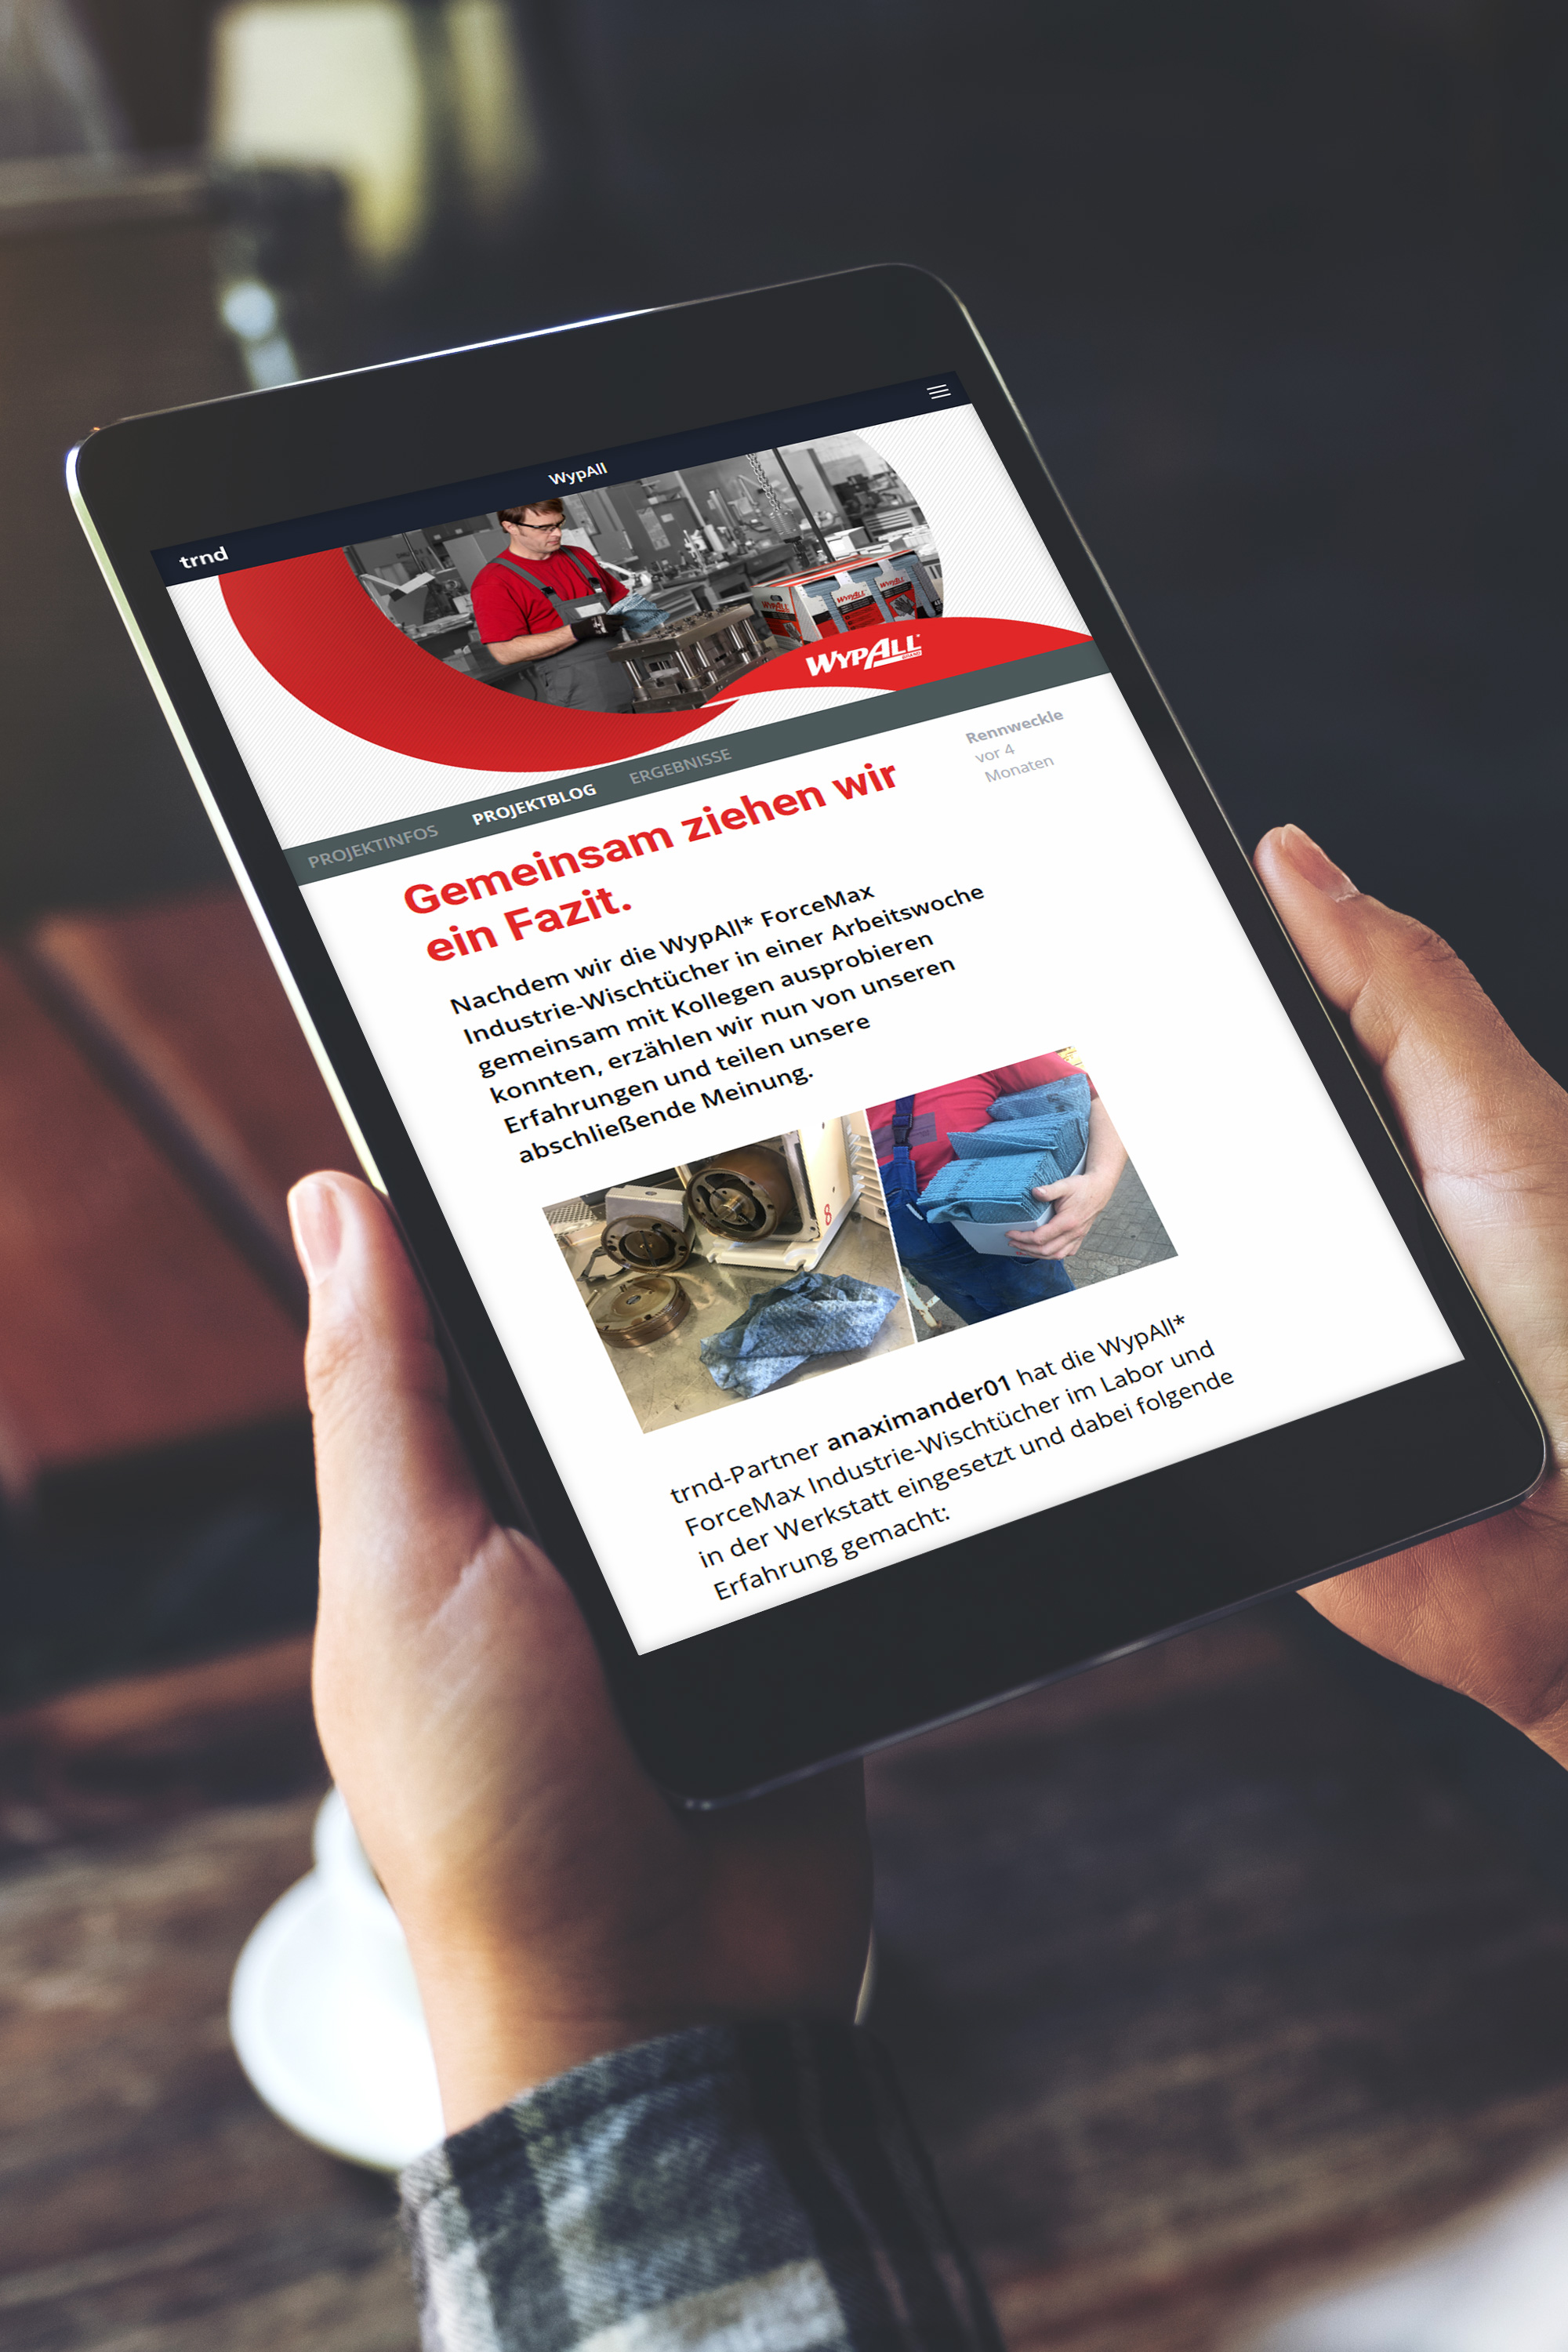 iPad screen with an article about WypAll ForceMax industrial wipes